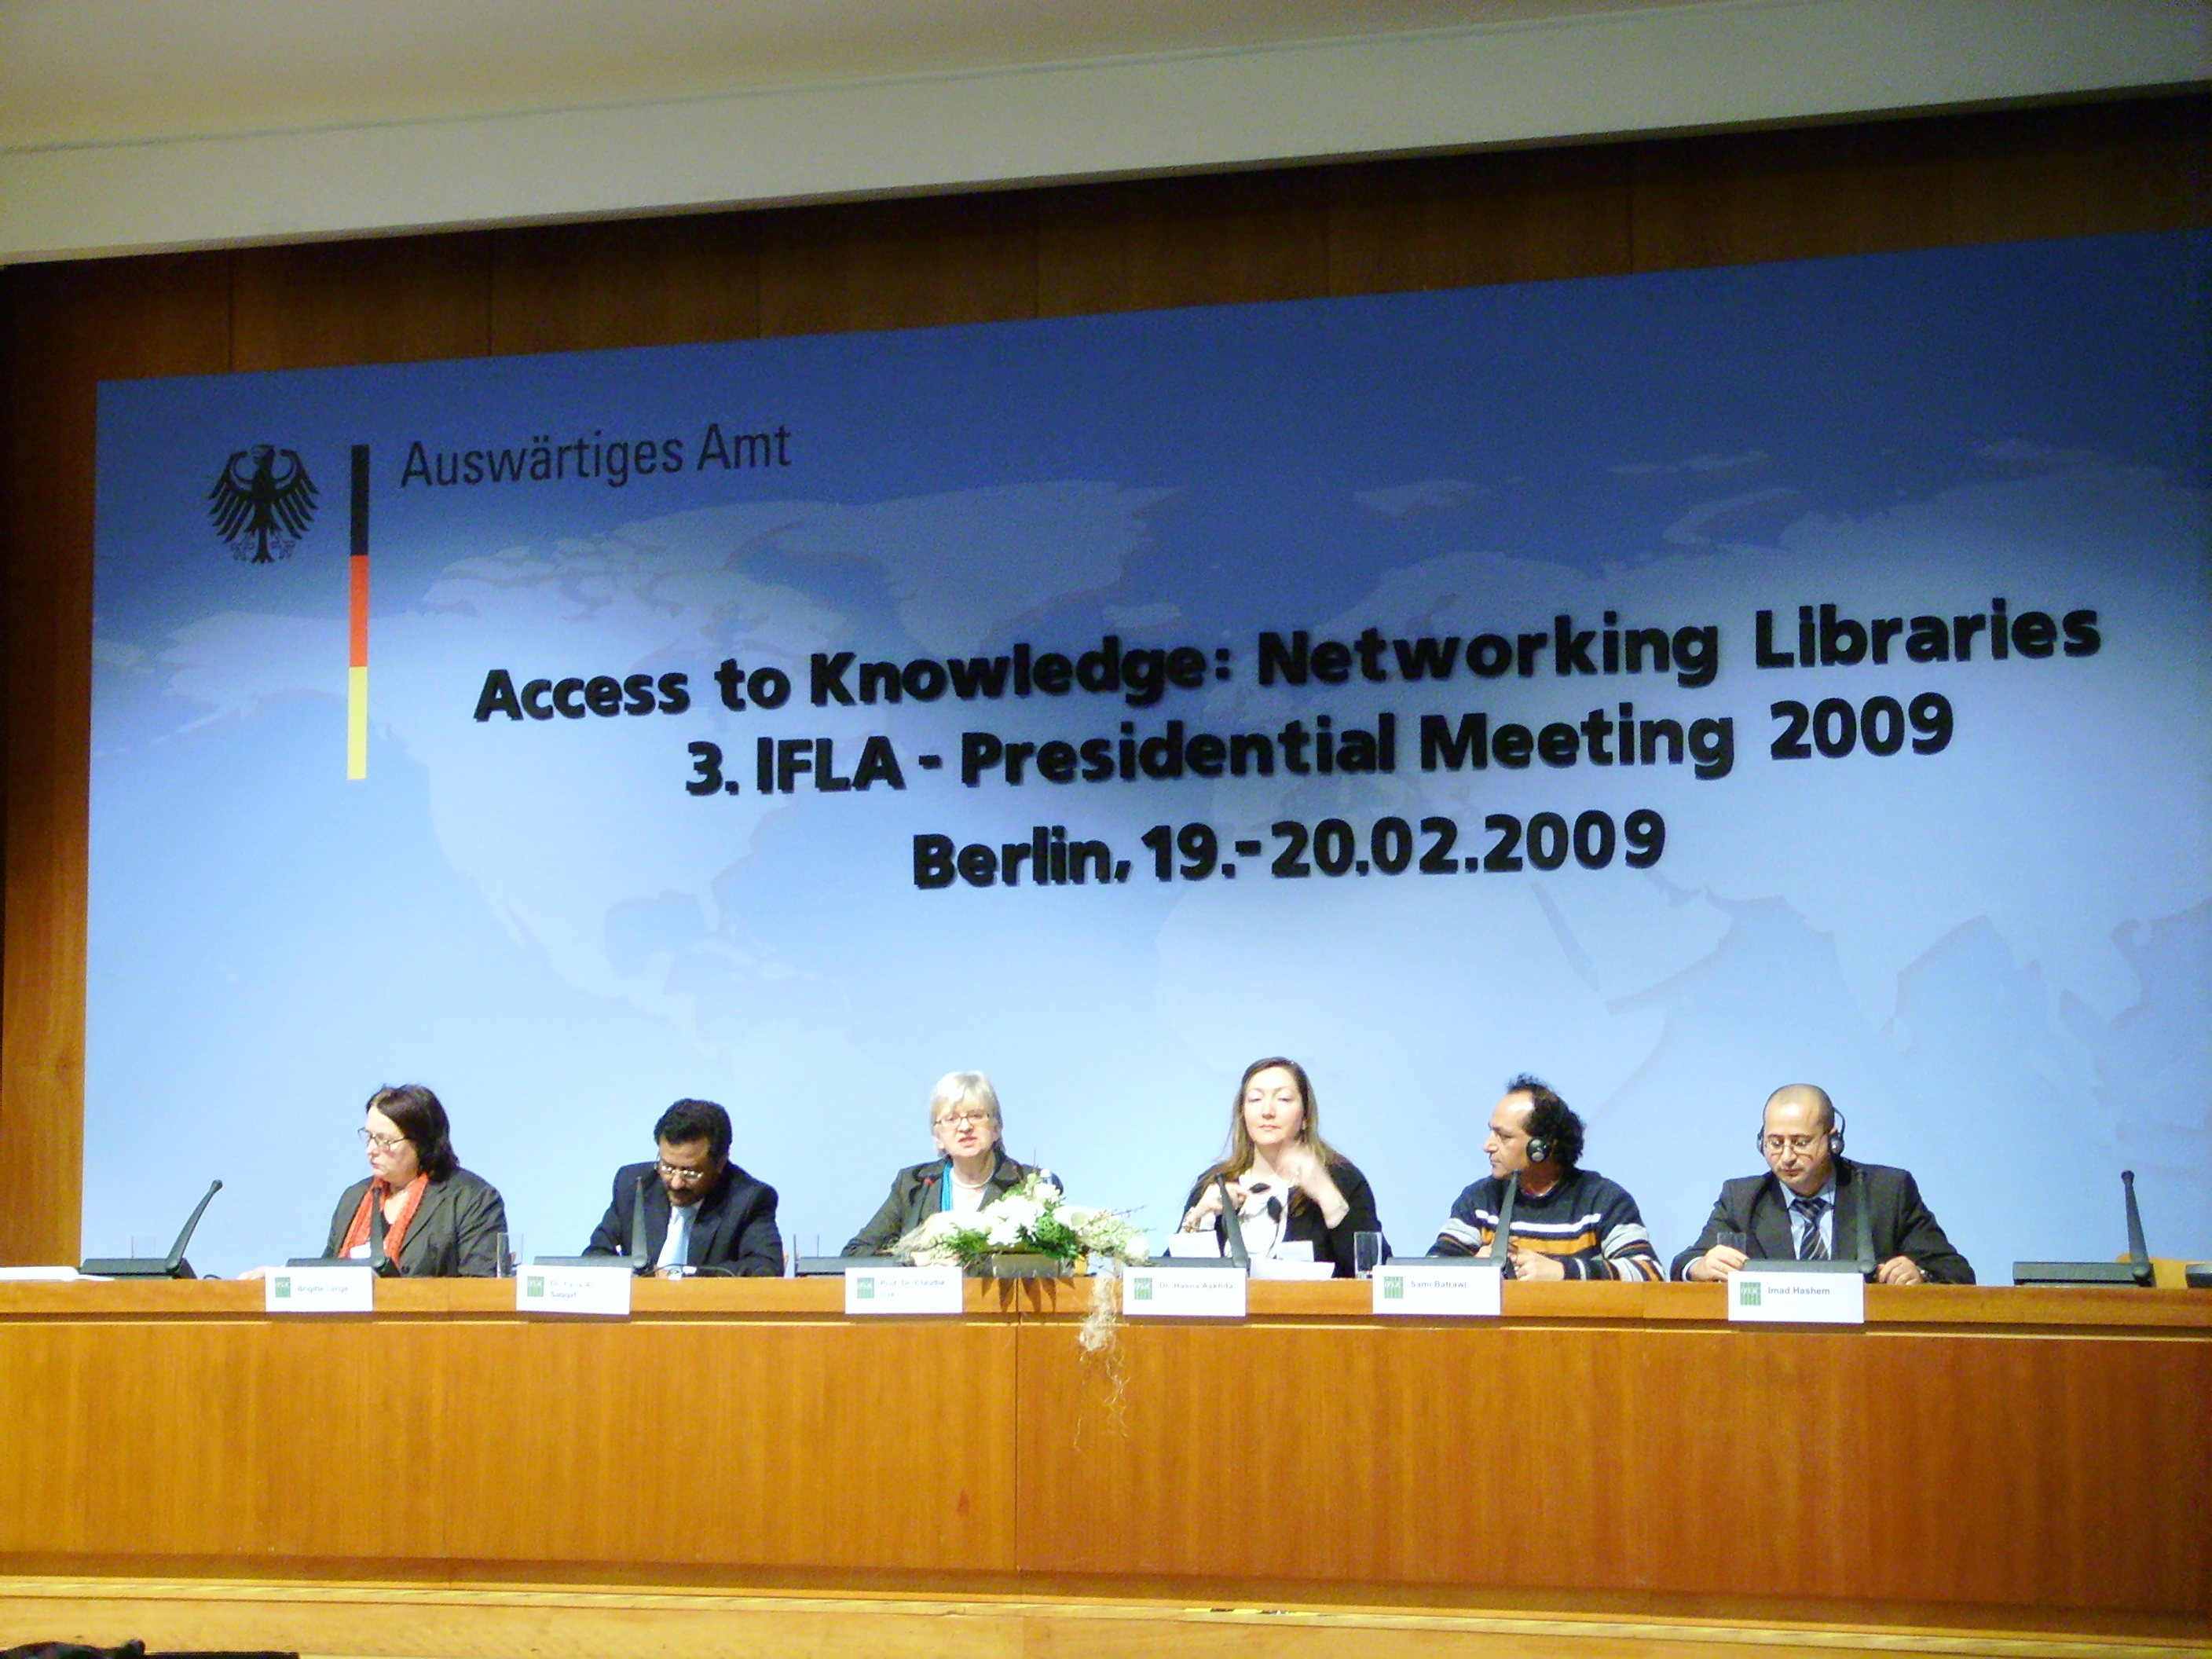 ifla-presidential-meeting.JPG